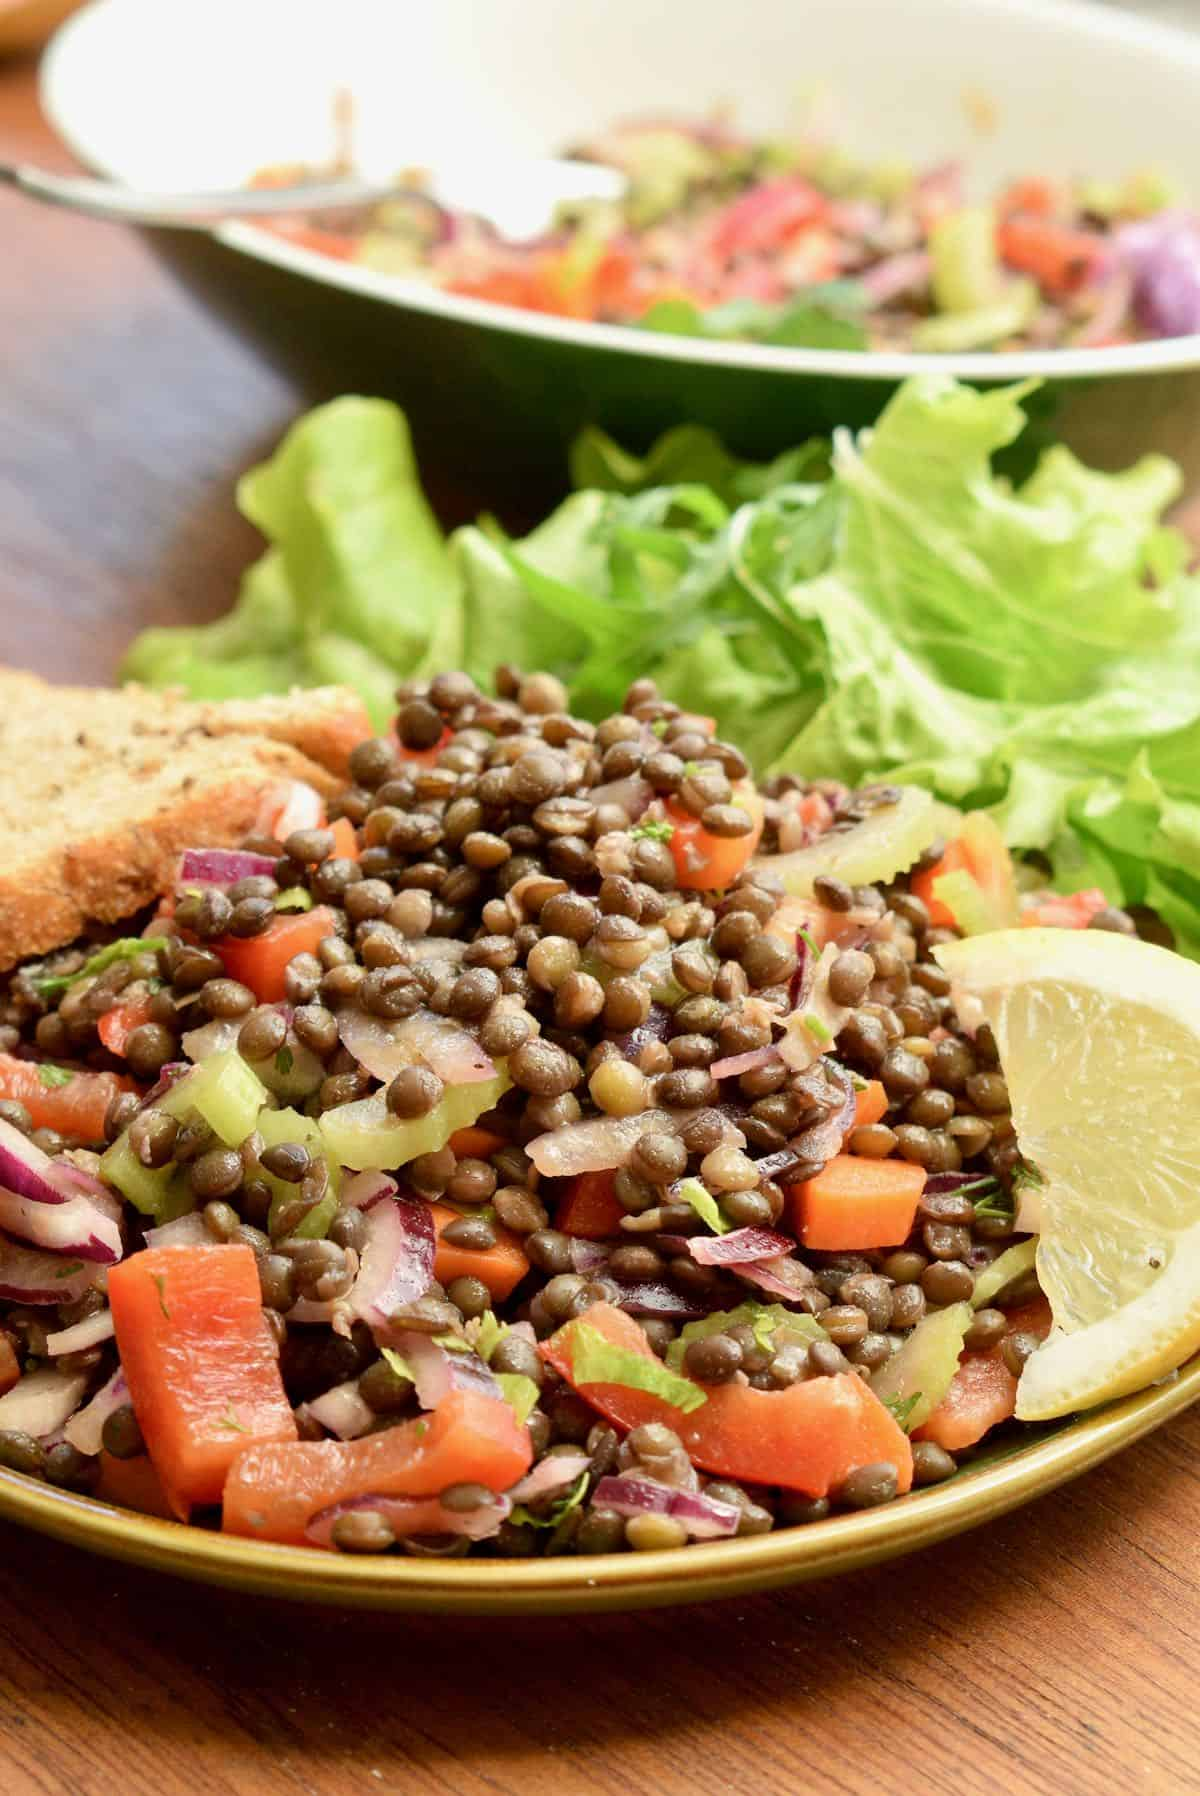 A pile of lentil salad on a plate, served with green salad and bread